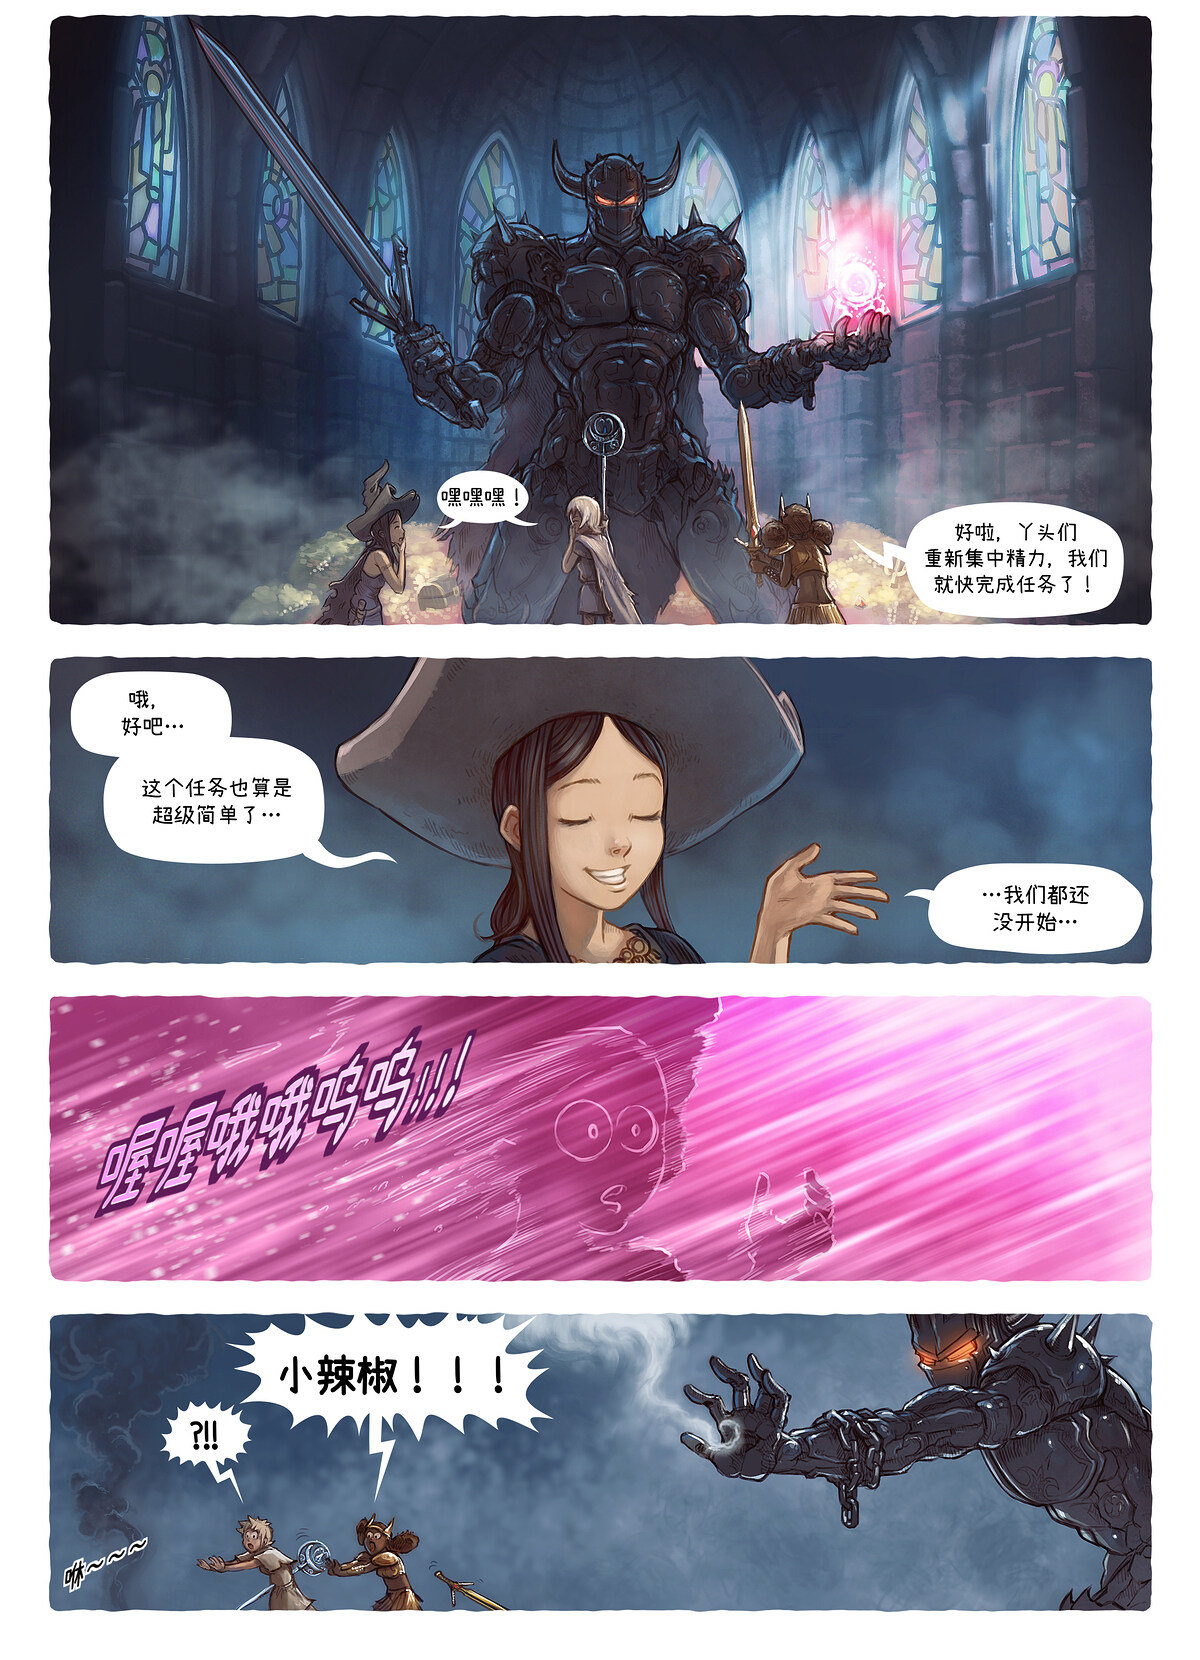 A webcomic page of Pepper&Carrot, 漫画全集 13 [cn], 页面 4